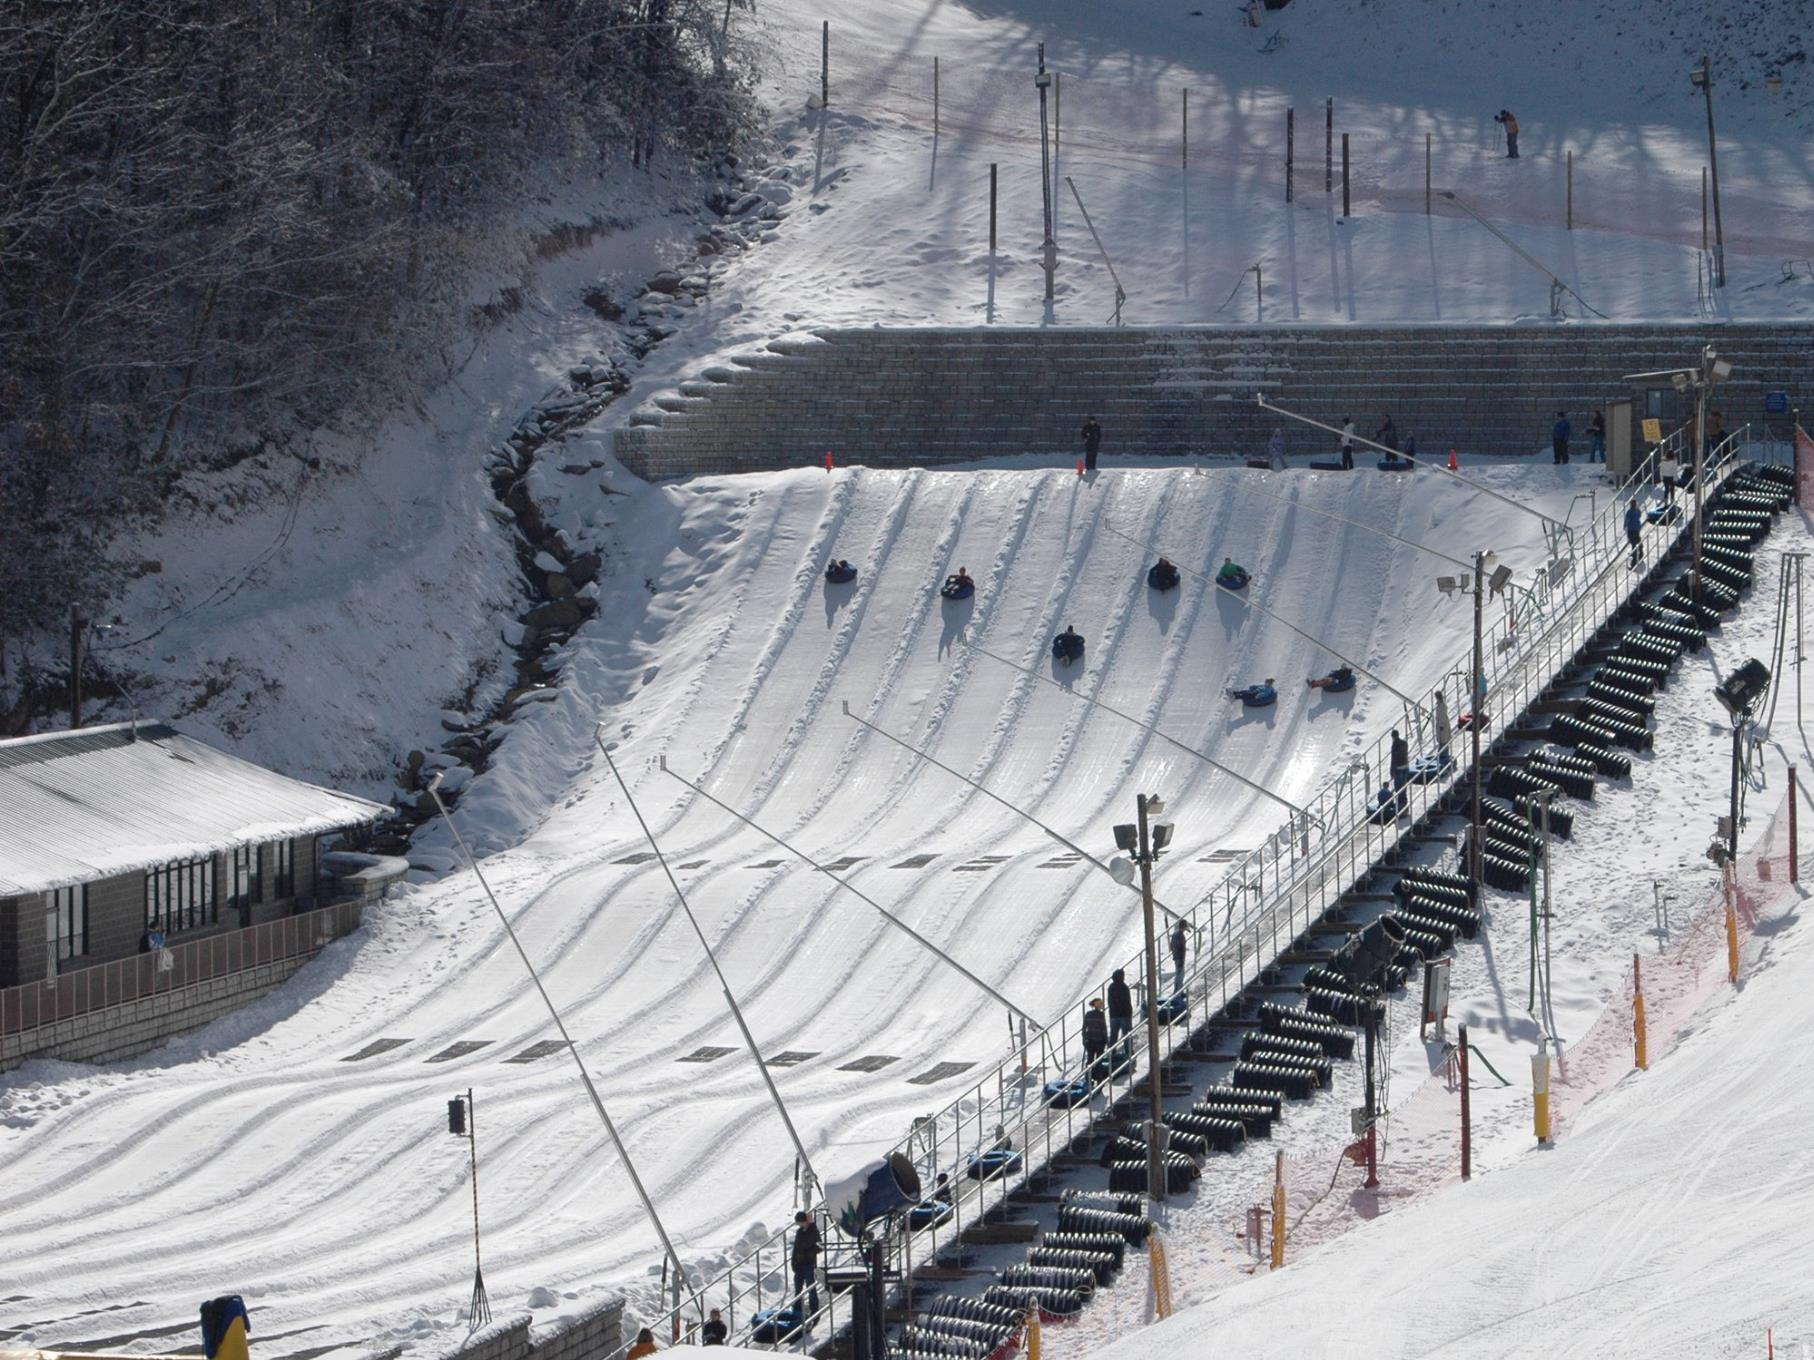 travelers-can-also-experience-the-ober-gatlinburg-ski-area-and-amusement-park-which-has-outdoor-activities-that-include-snow-tubing-skiing-and-a-freestyle-terrain-park